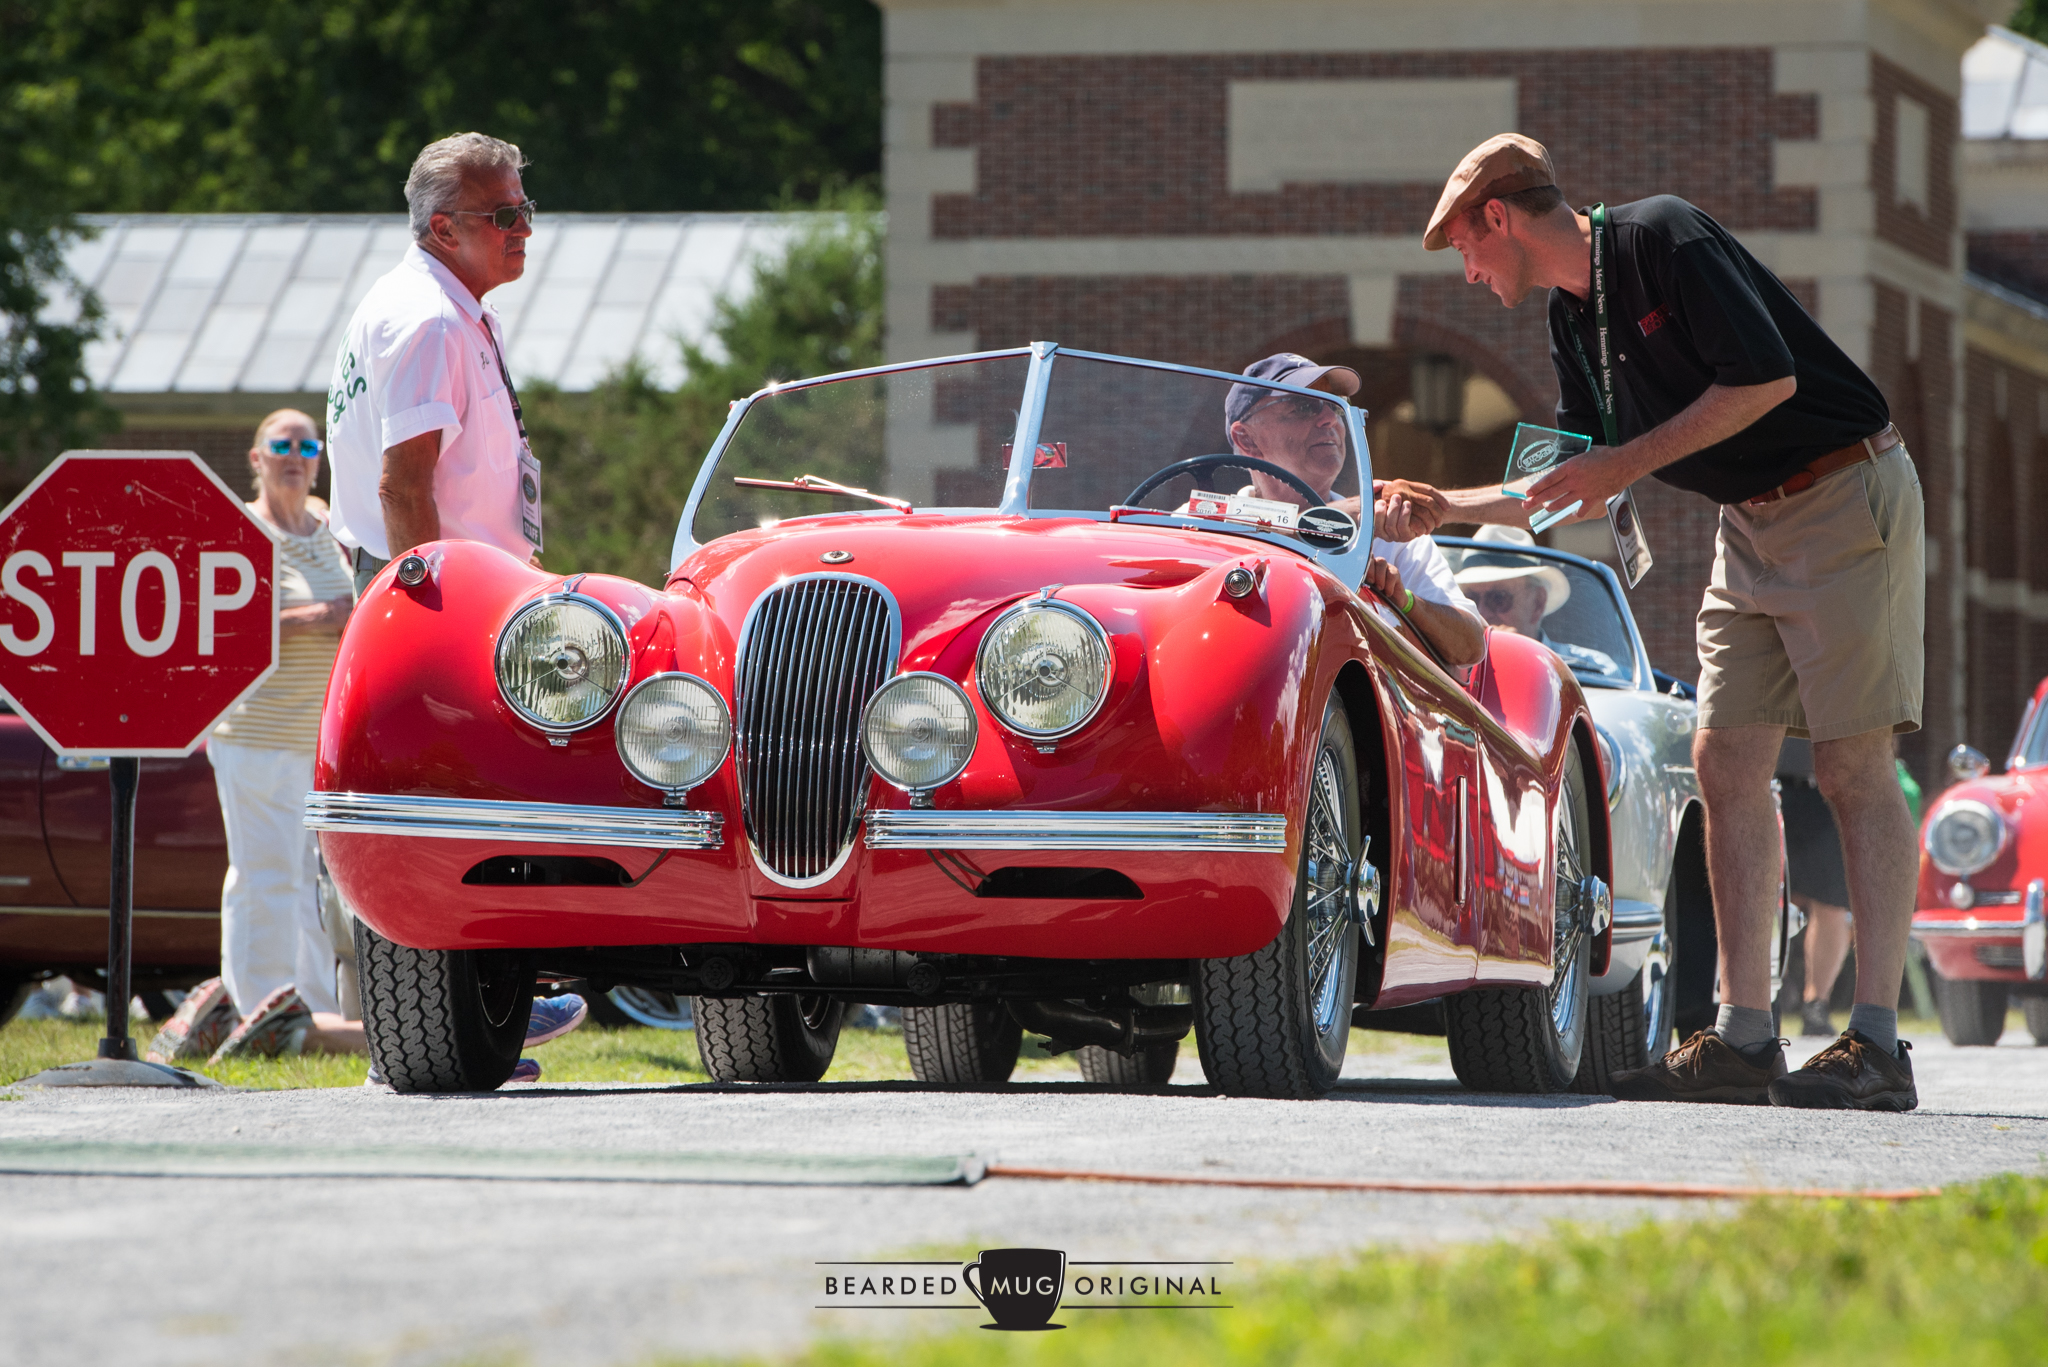 Publisher Jim Menneto (l.) and Mark J. McCourt (r.) present this beautiful Jaguar XK120 with a well-deserved award at the 2016 Sports & Exotic Show.